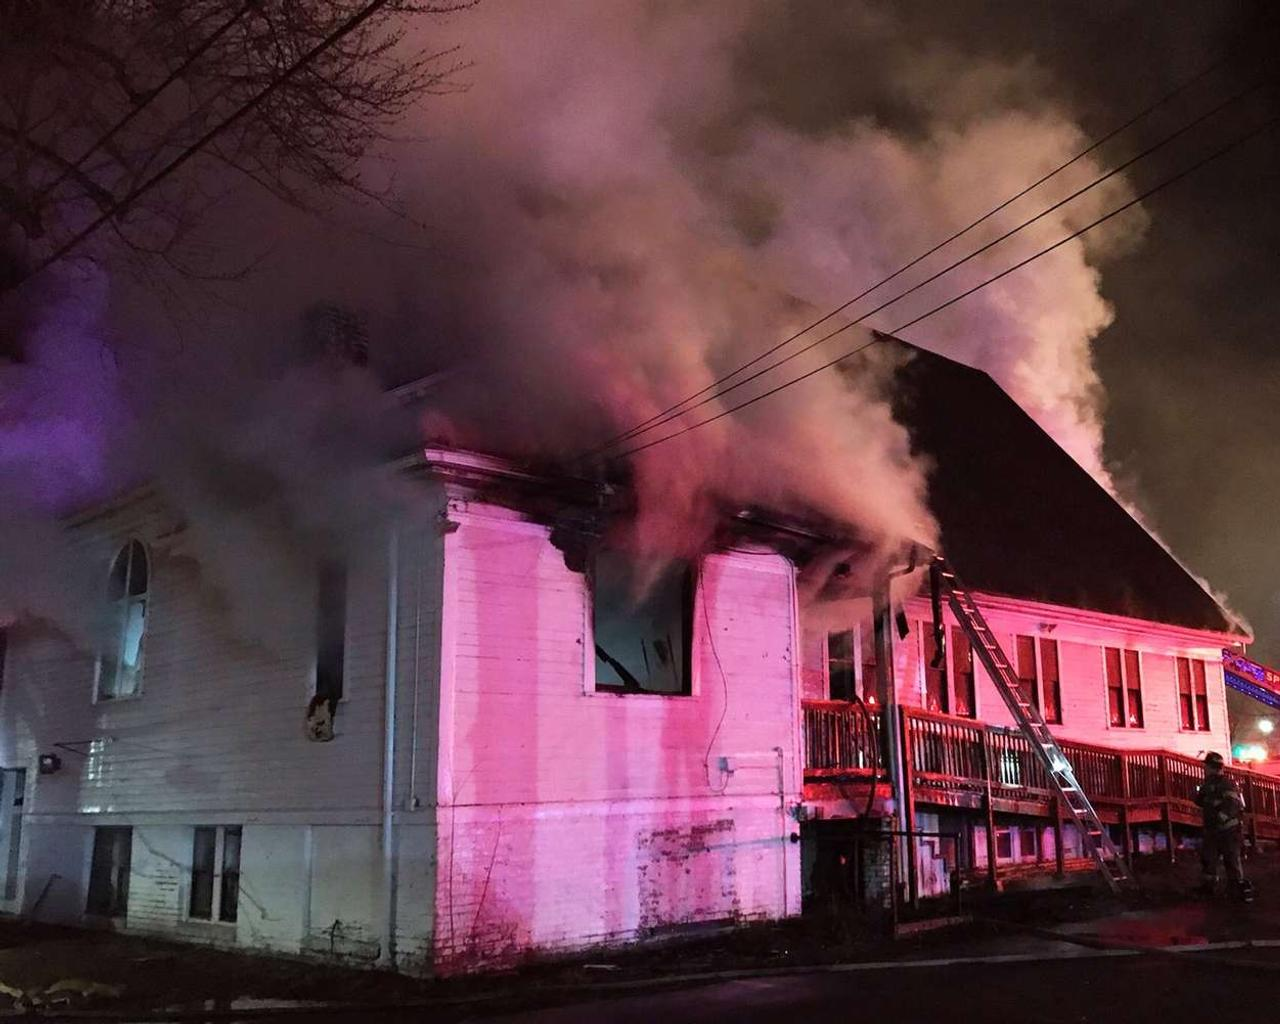 Man charged with hate crimes in burning of Black church